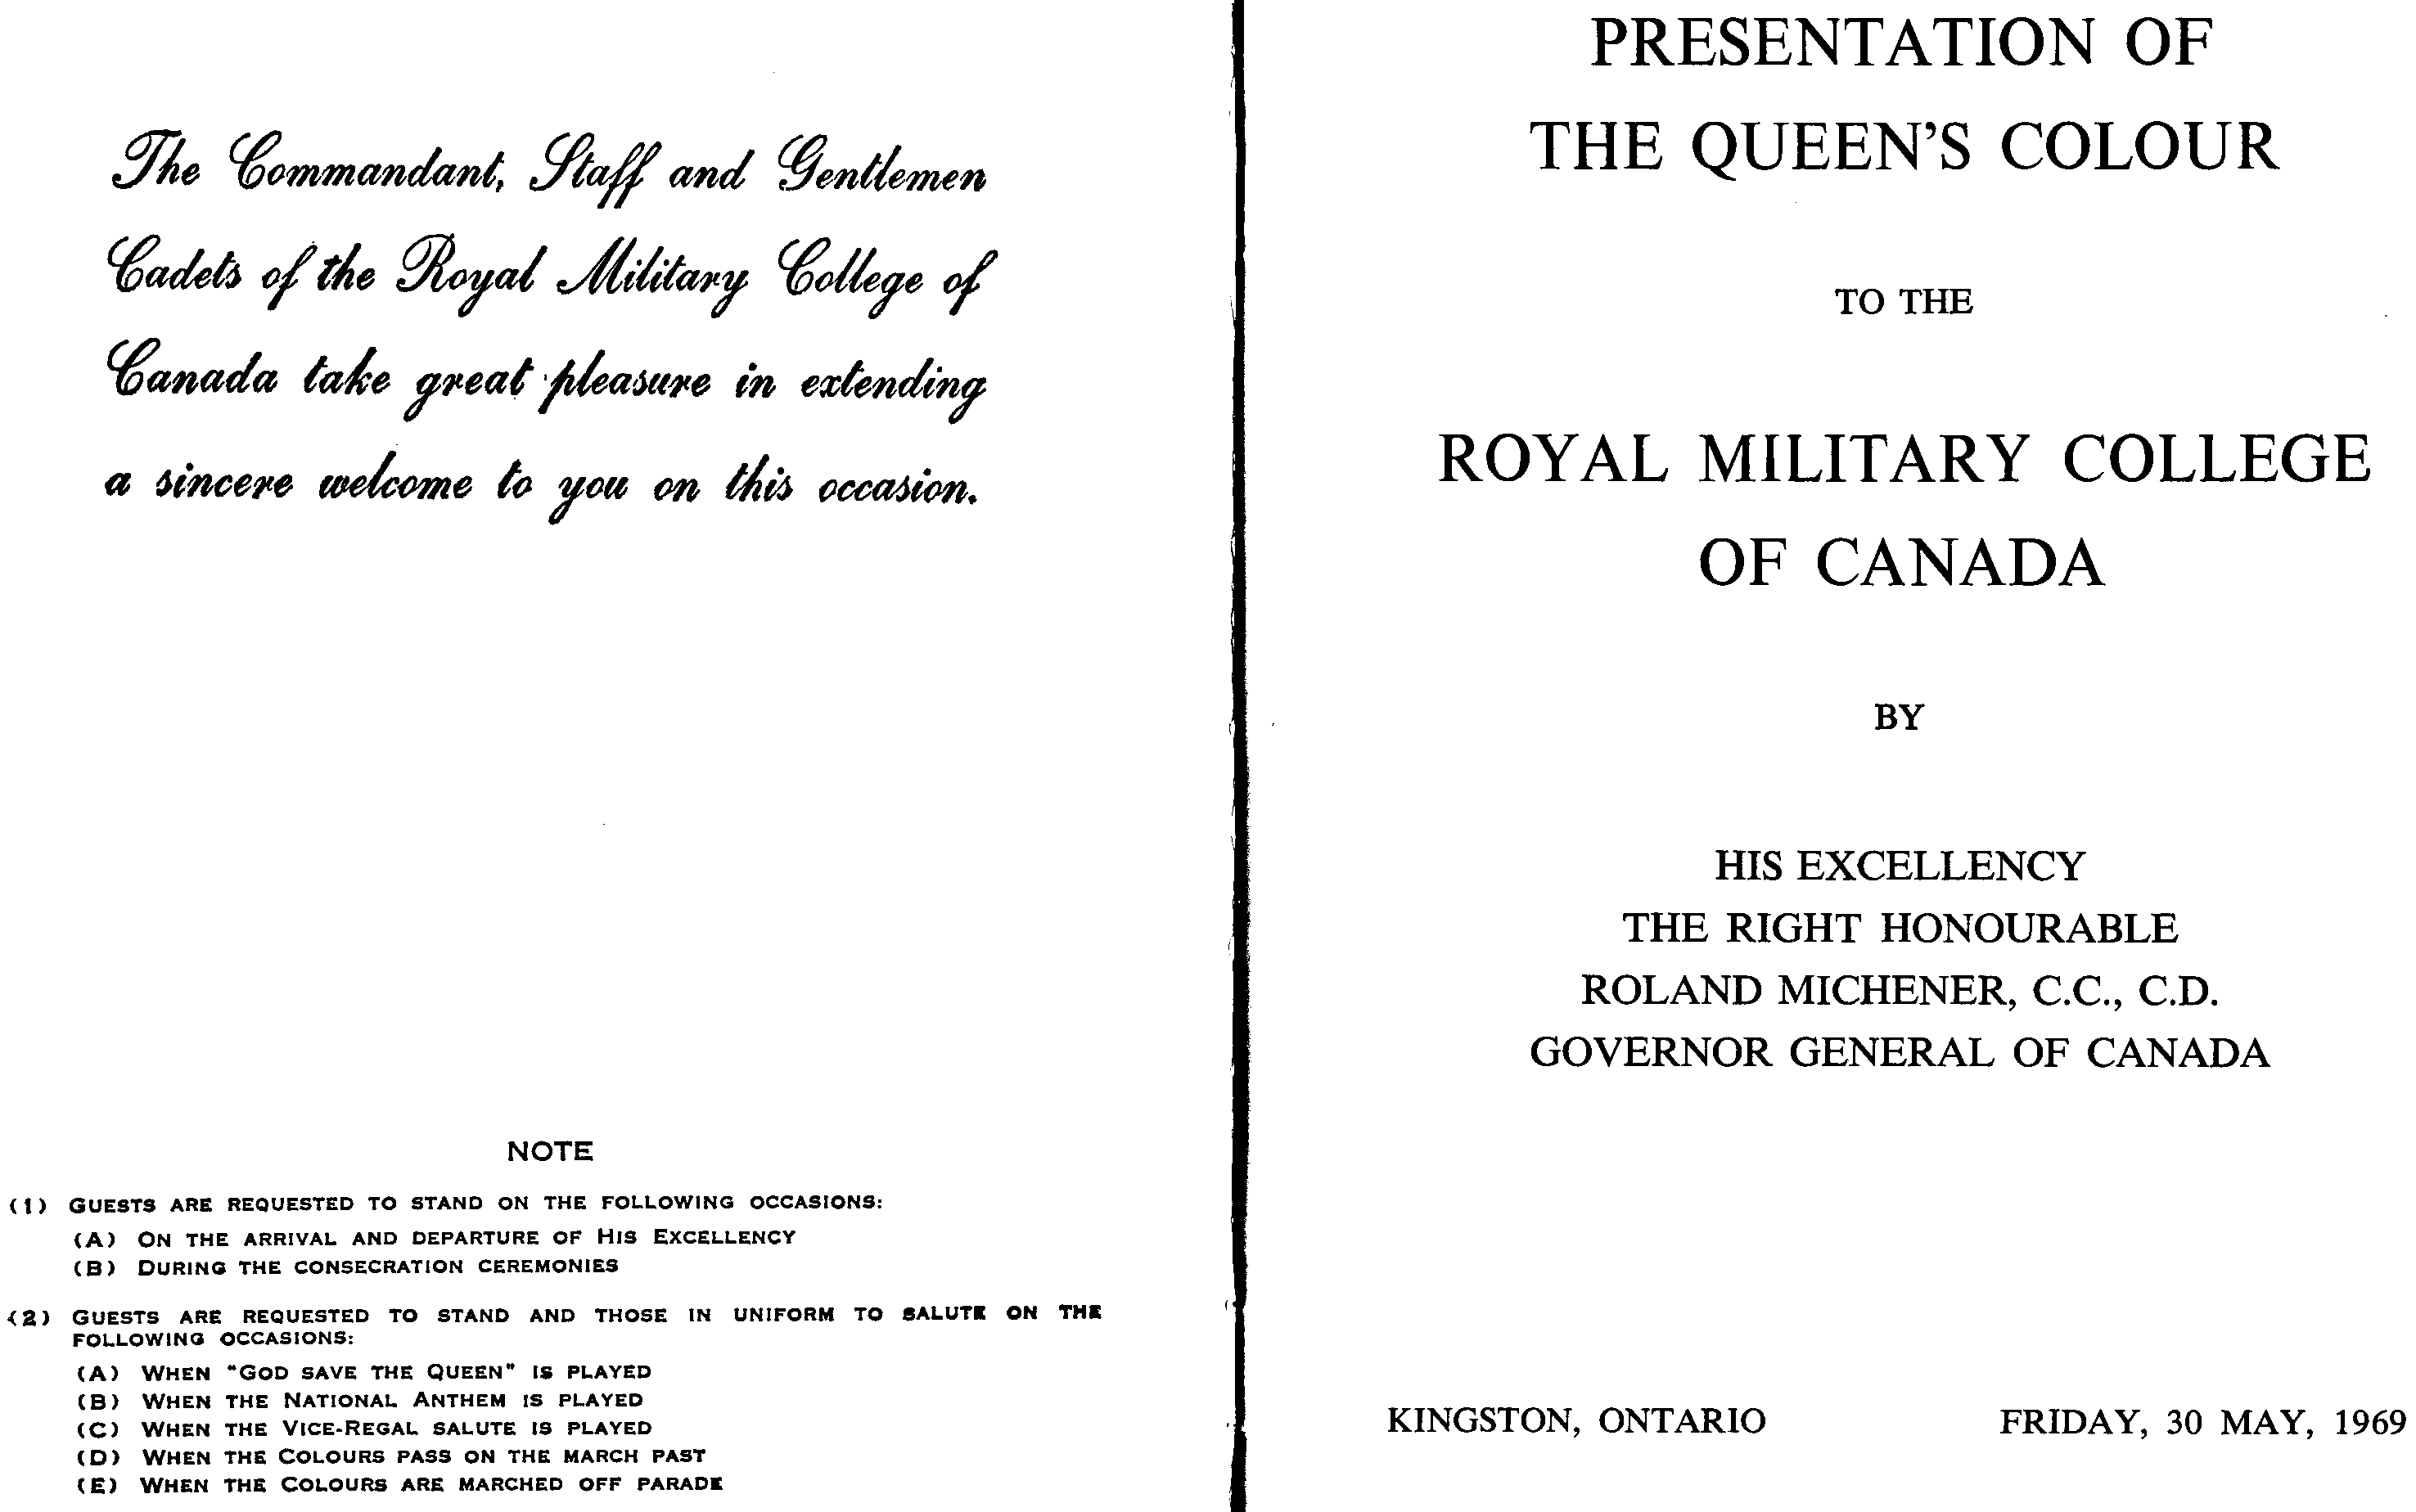 12_RMC-Presentation of Queens Colour-30May 1969-P1-2